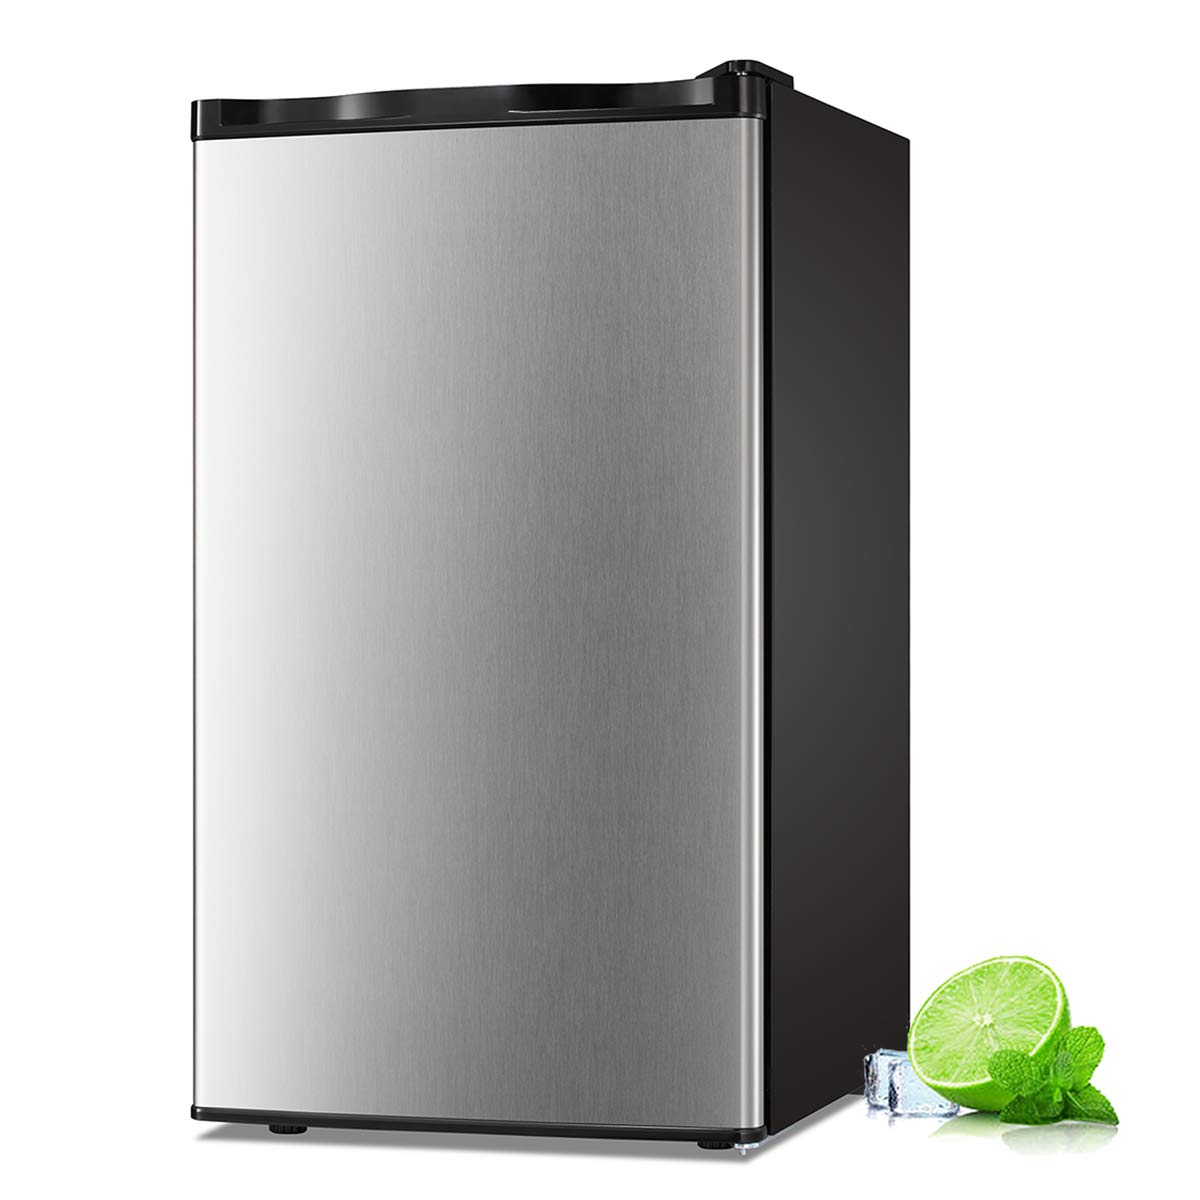 Antarctic Star Compact Mini Refrigerator Separate Freezer, Small Fridge Double Single-Door Adjustable Removable Retro Stainless Steel Shelves Garage Camper Basement/Dorm/Office 3.2 cu ft Gray